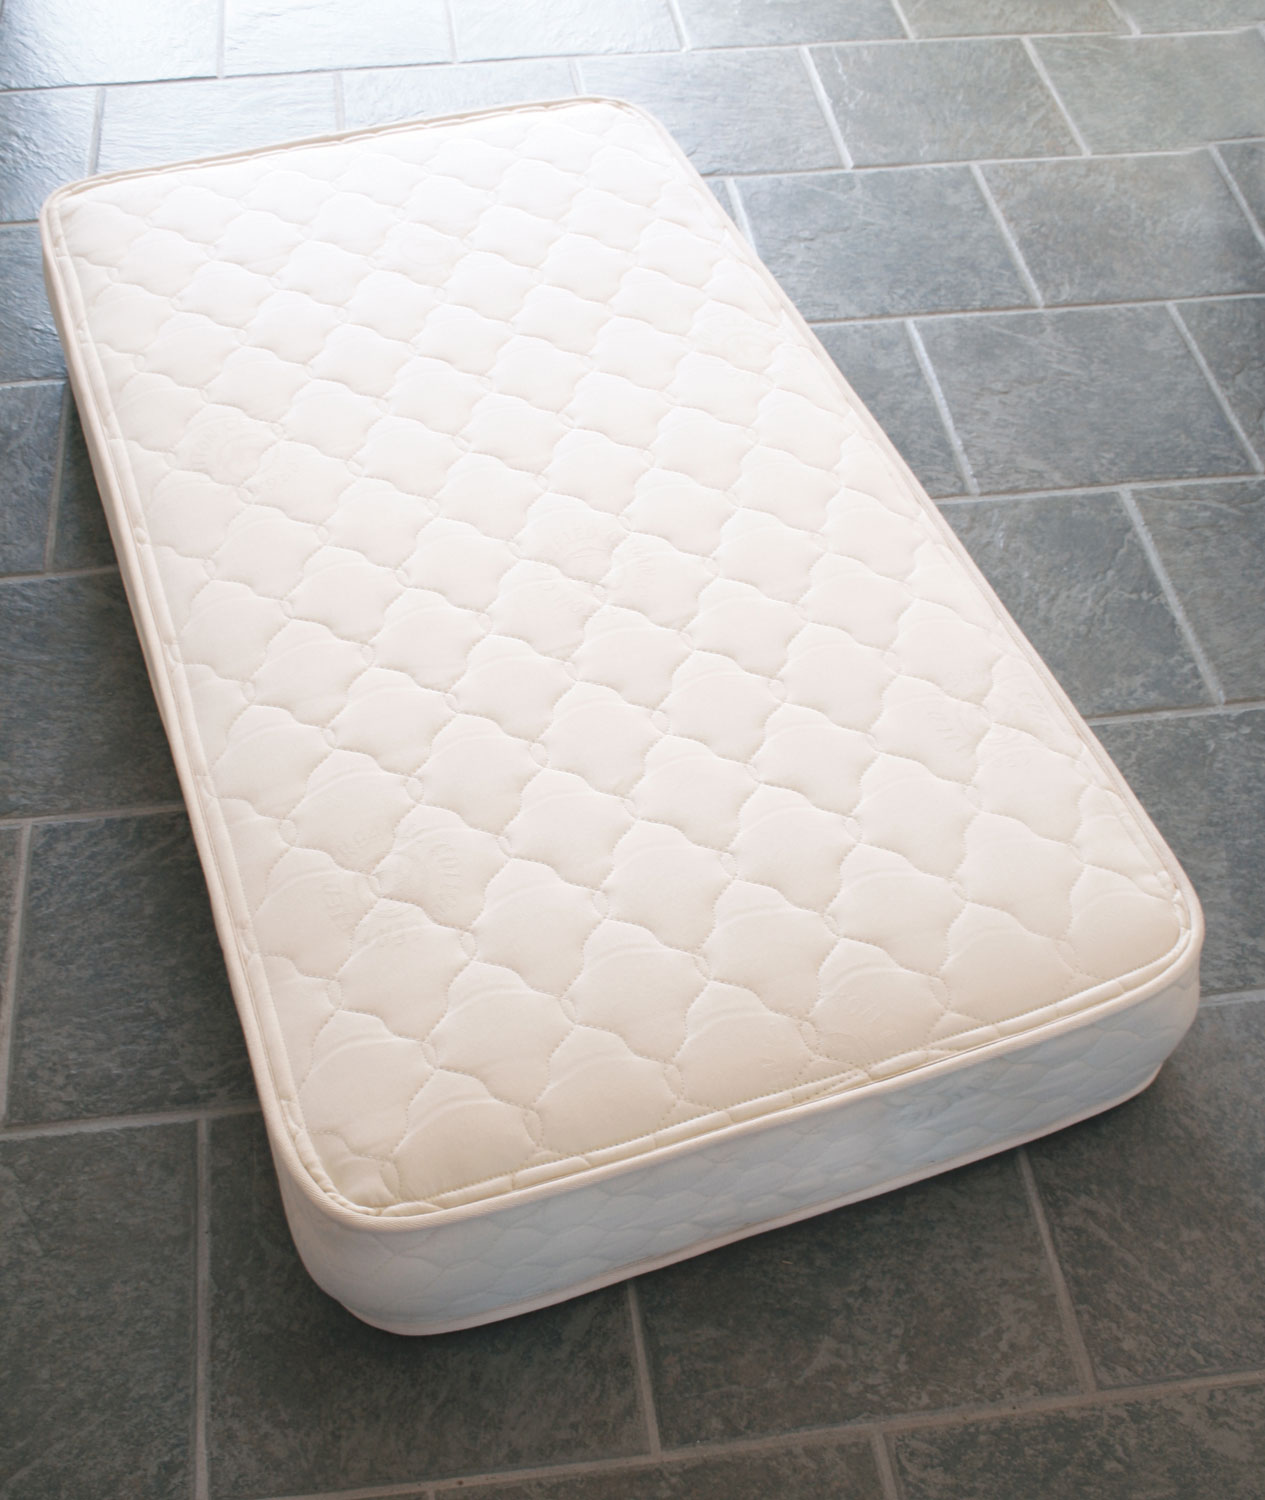 Rubber Mattress Certified Organic Natural Rubber Crib Mattress Sleepworks